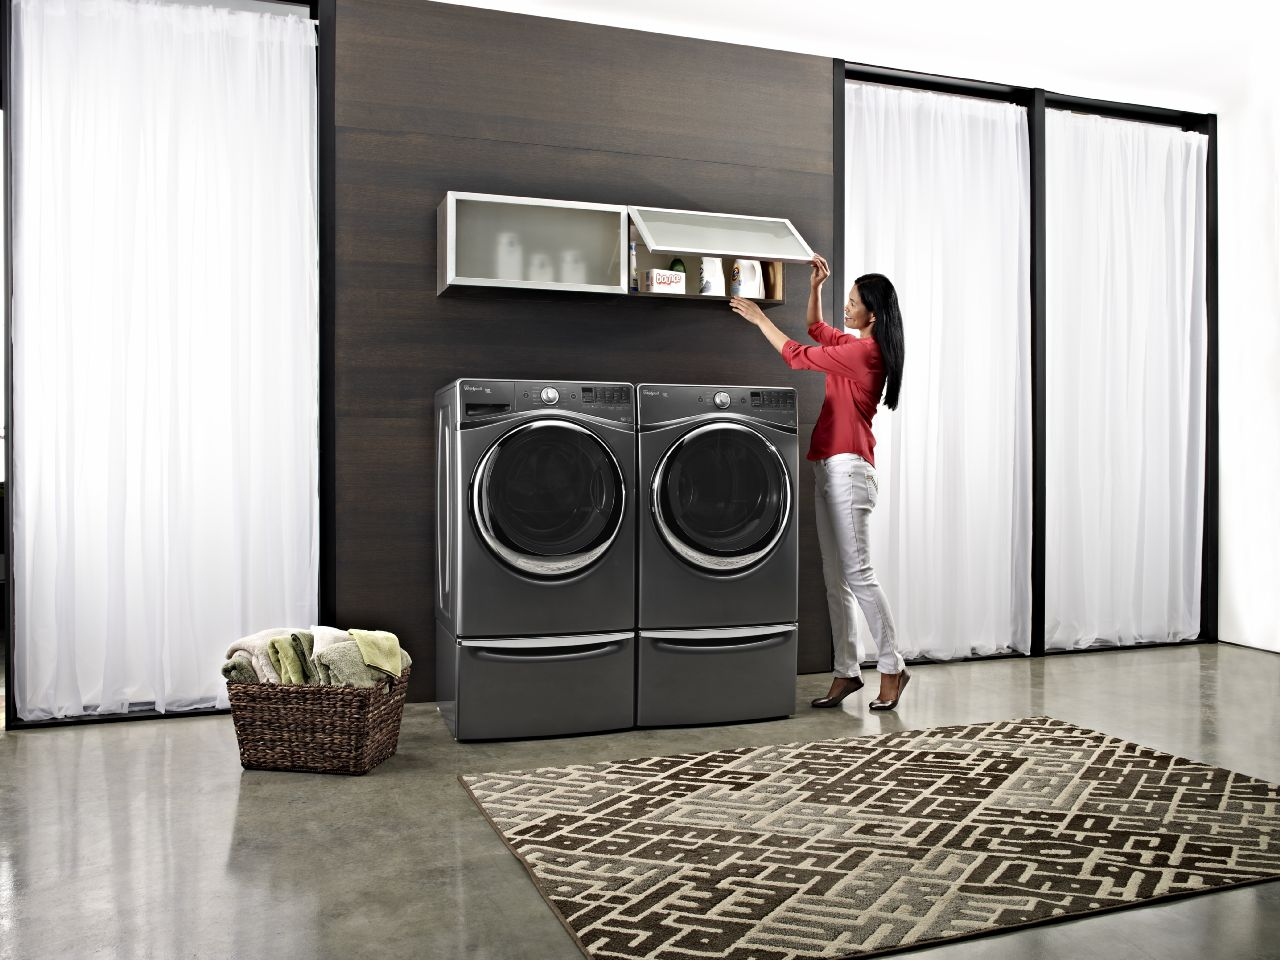 Whirlpool Laundry Features